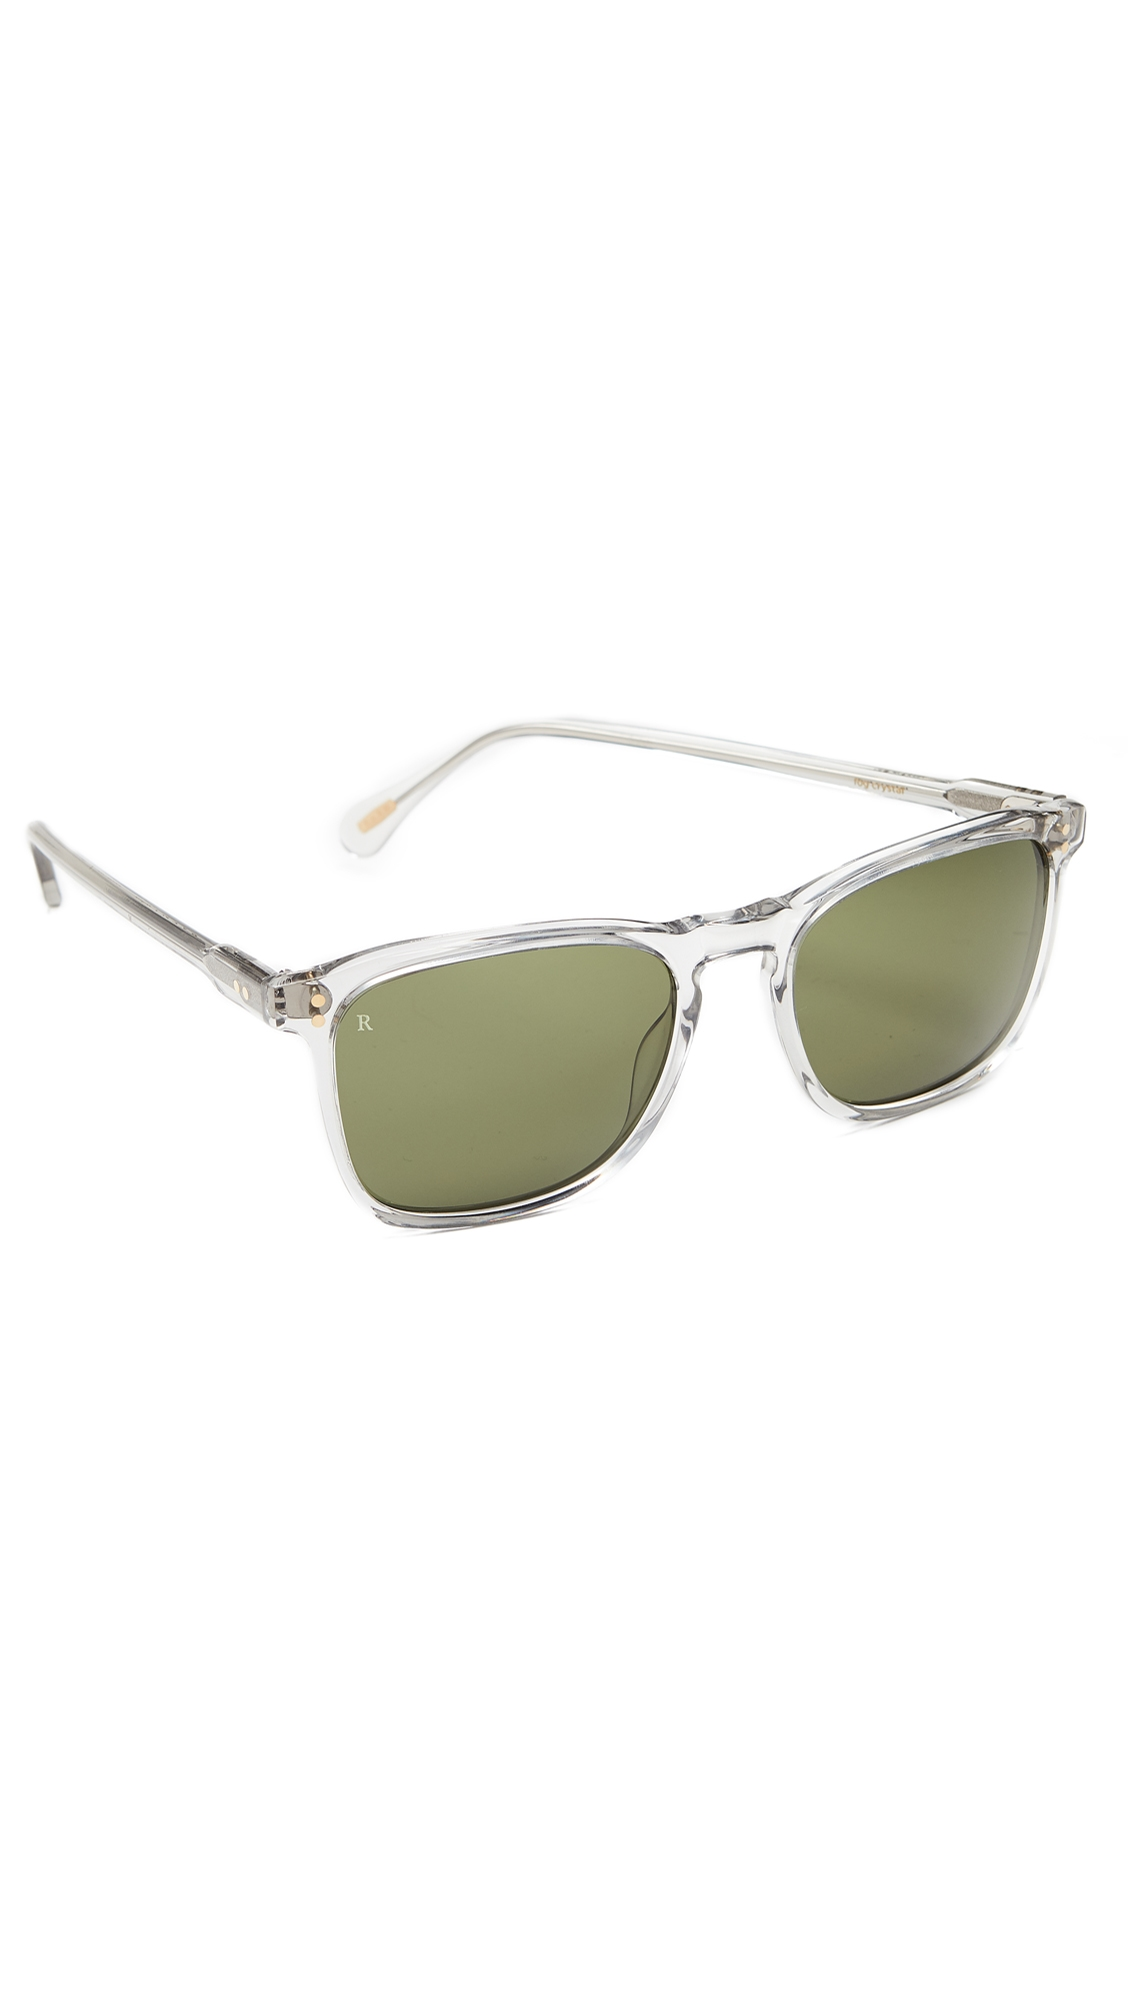 d98517f178 Raen Wiley Sunglasses In Fog Green